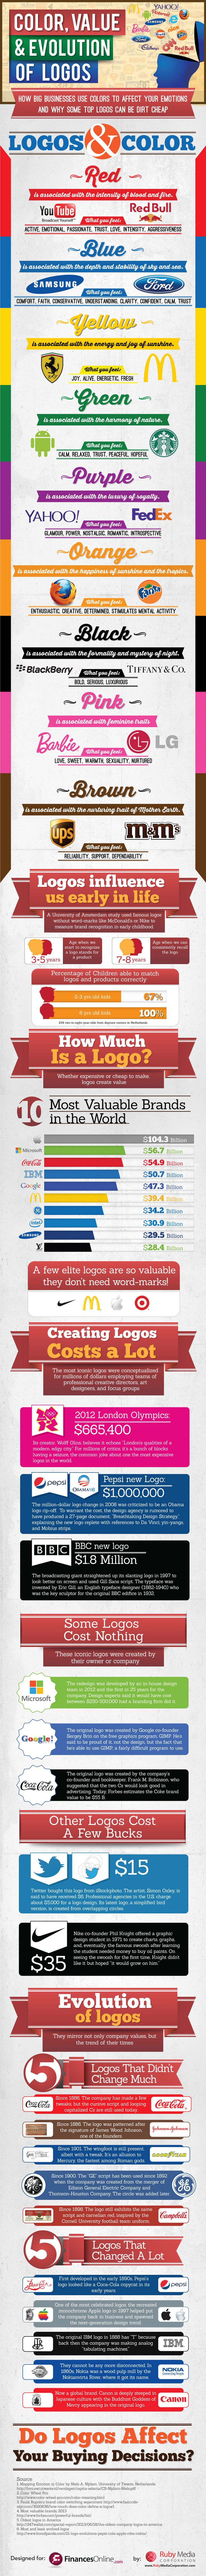 What Does the Color of Your Logo Say About Your Business? (Infographic).  It's interesting how the color of your logos can impact the view of people.